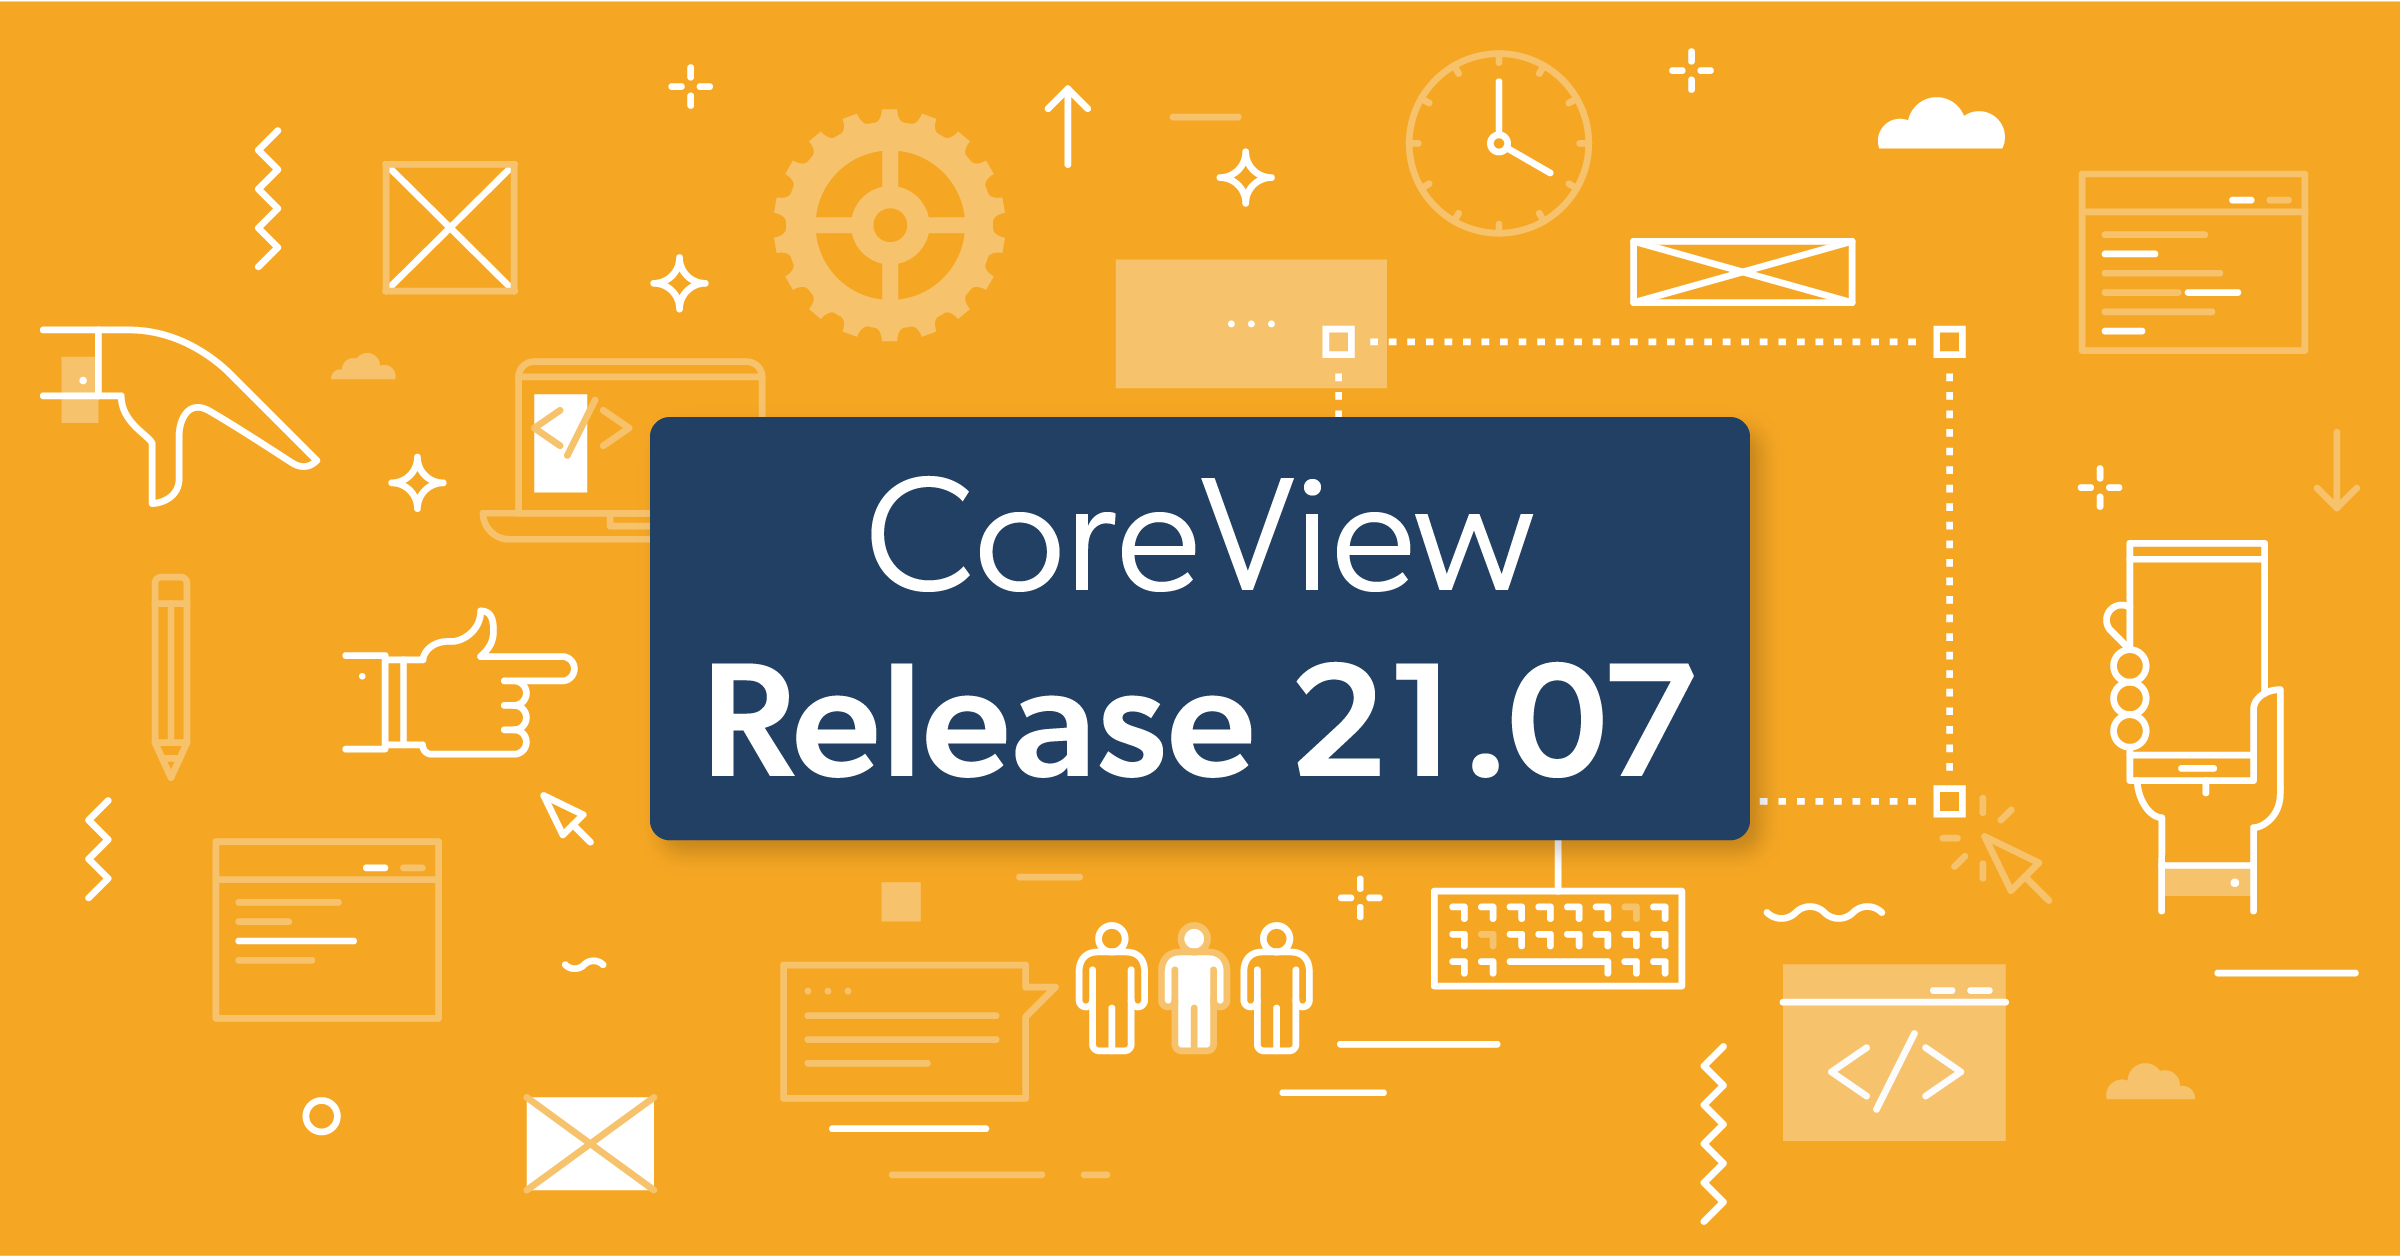 CoreView Release 21.07